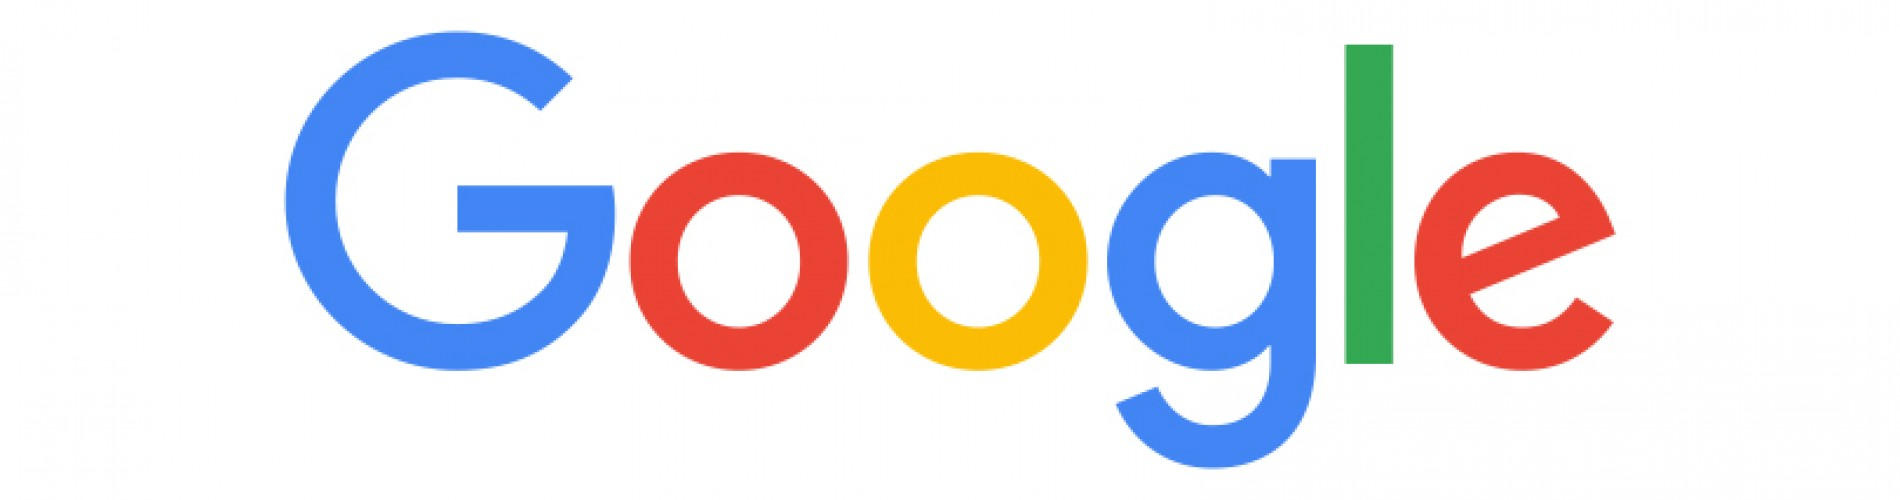 Google has a beautiful new logo